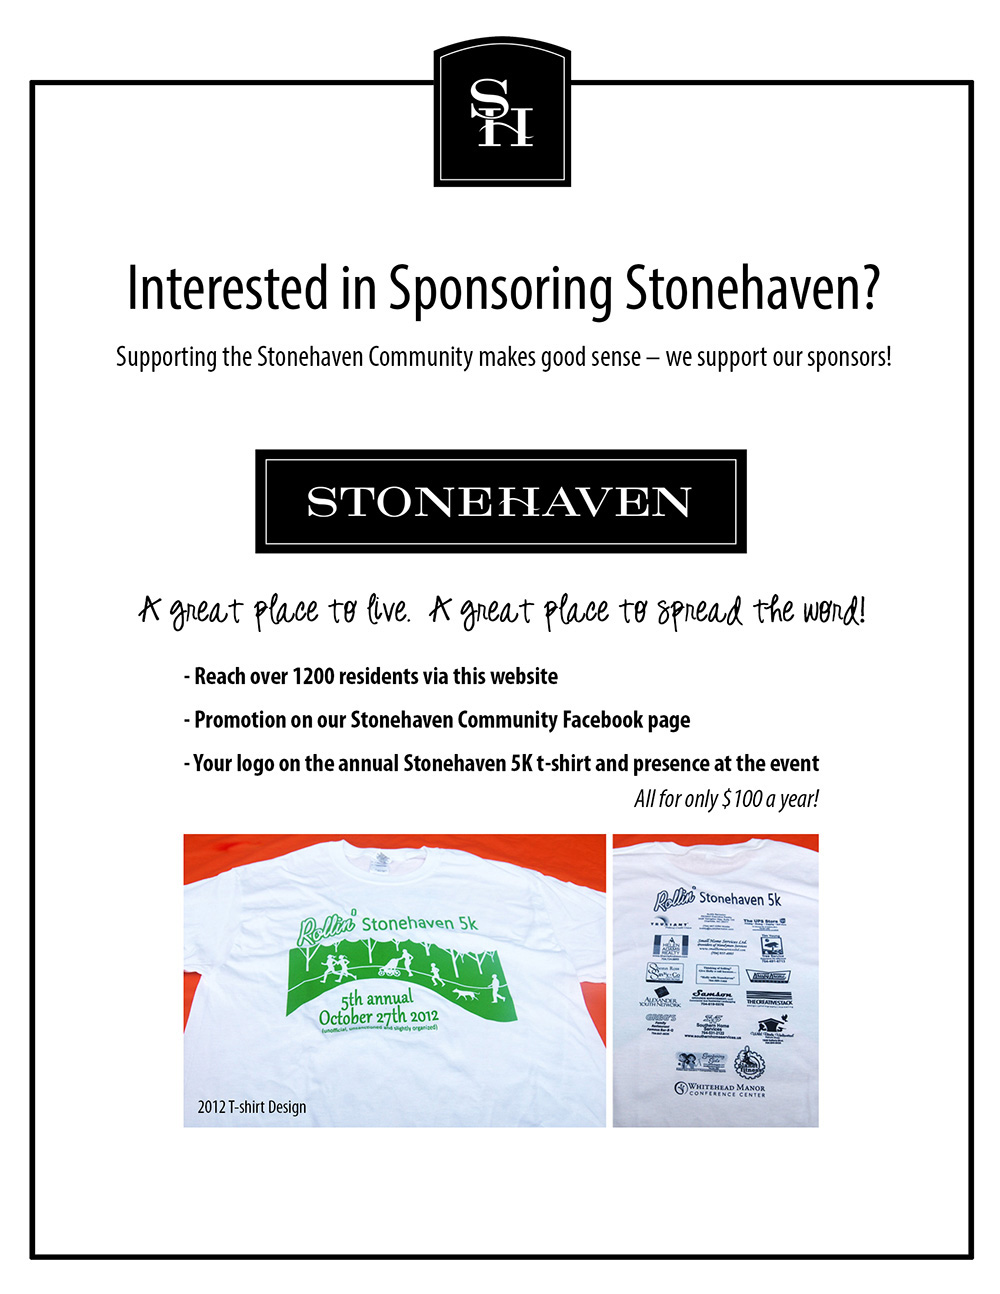 InterestedInSponsoring_StonehavenCharlotte